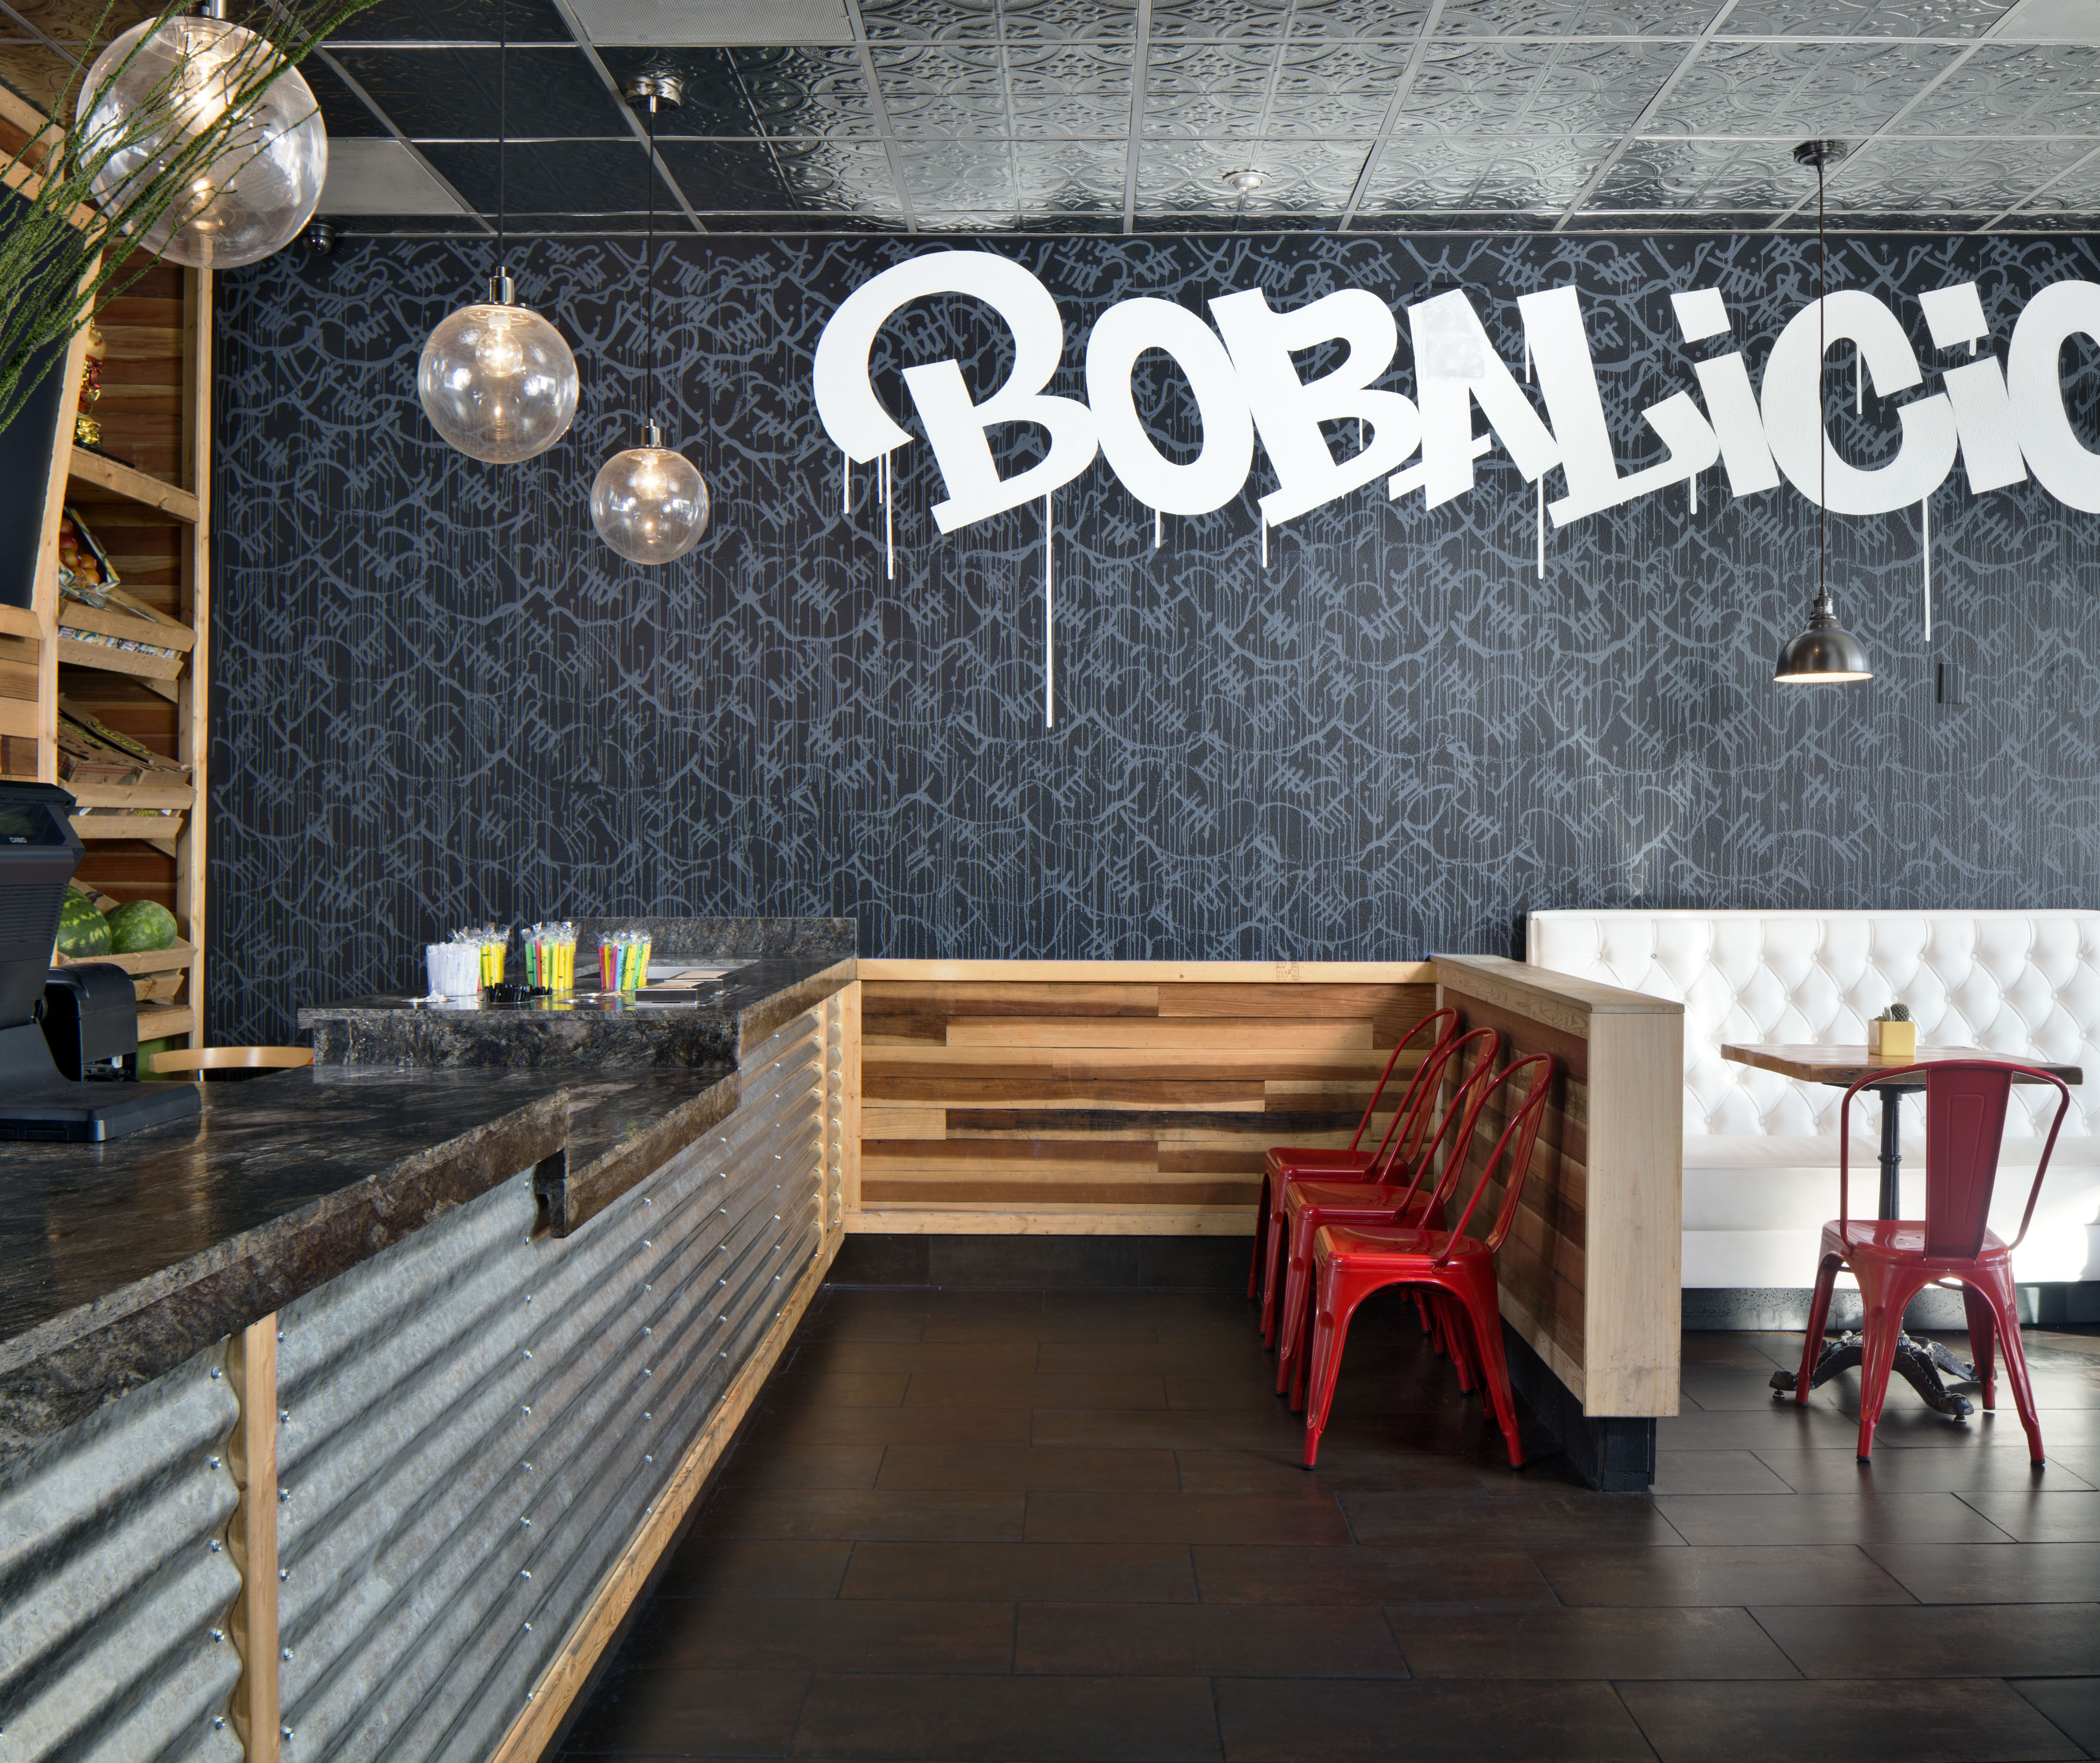 Boba Tea Shop Modern And Industrial Style See More Work From